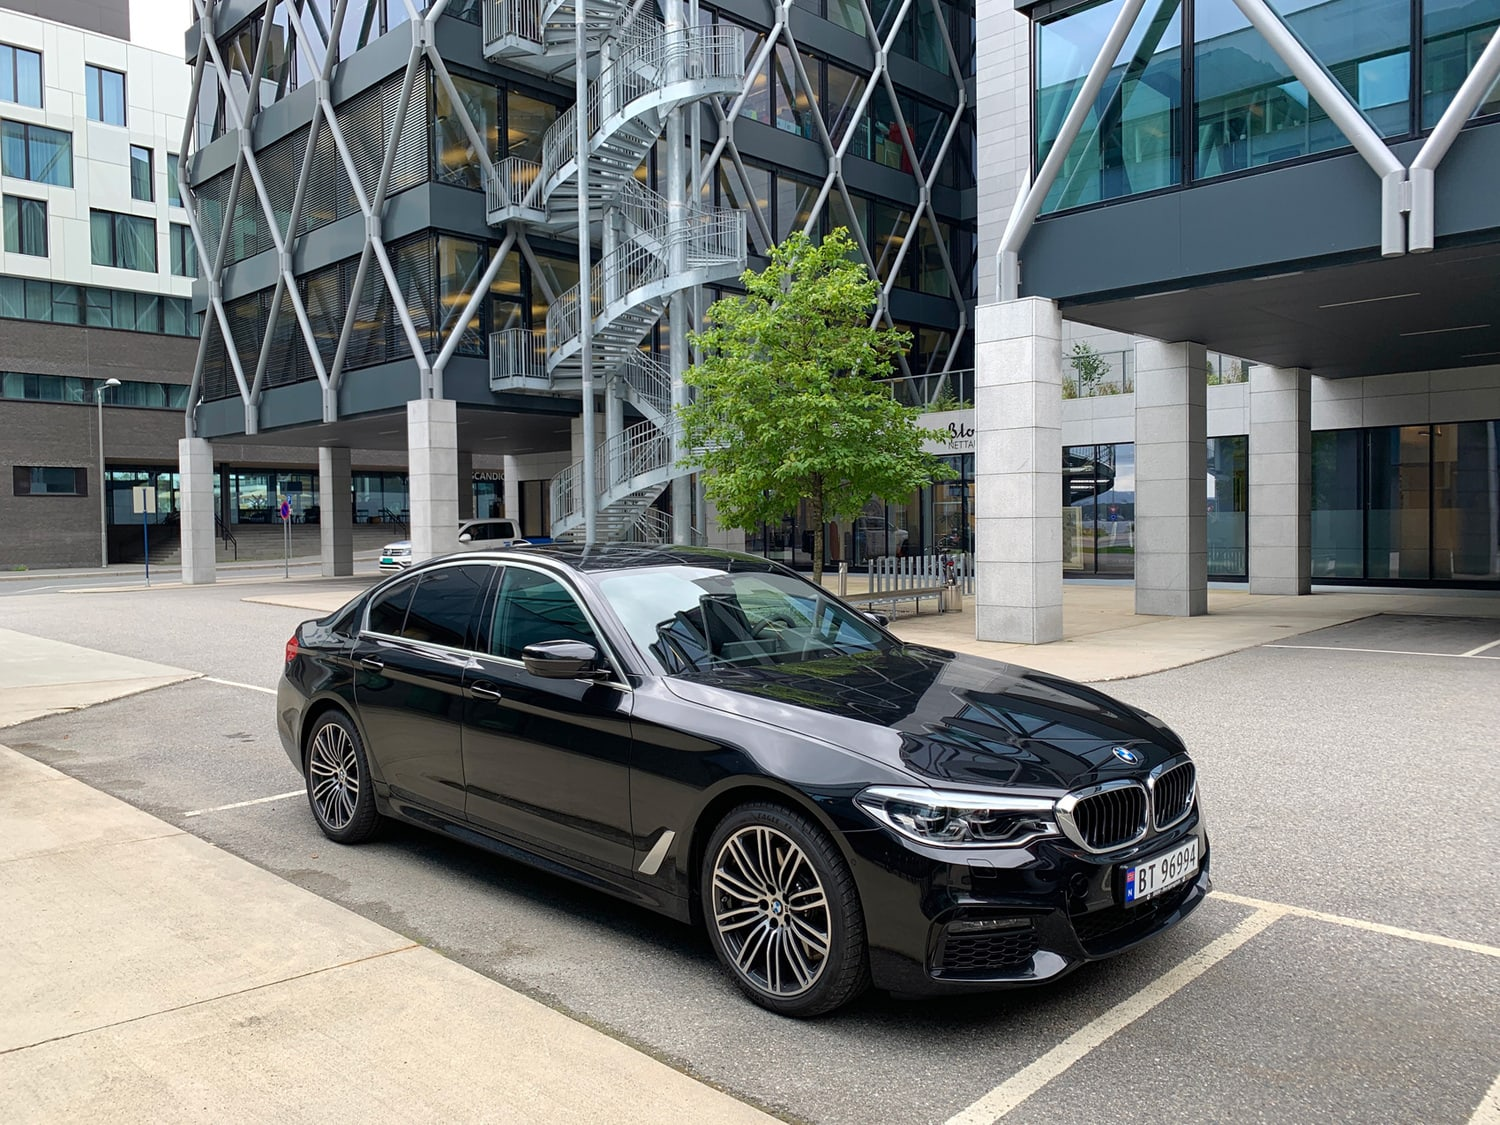 Langtest av BMW 530e xDrive (sept 2019) - Nybiltester